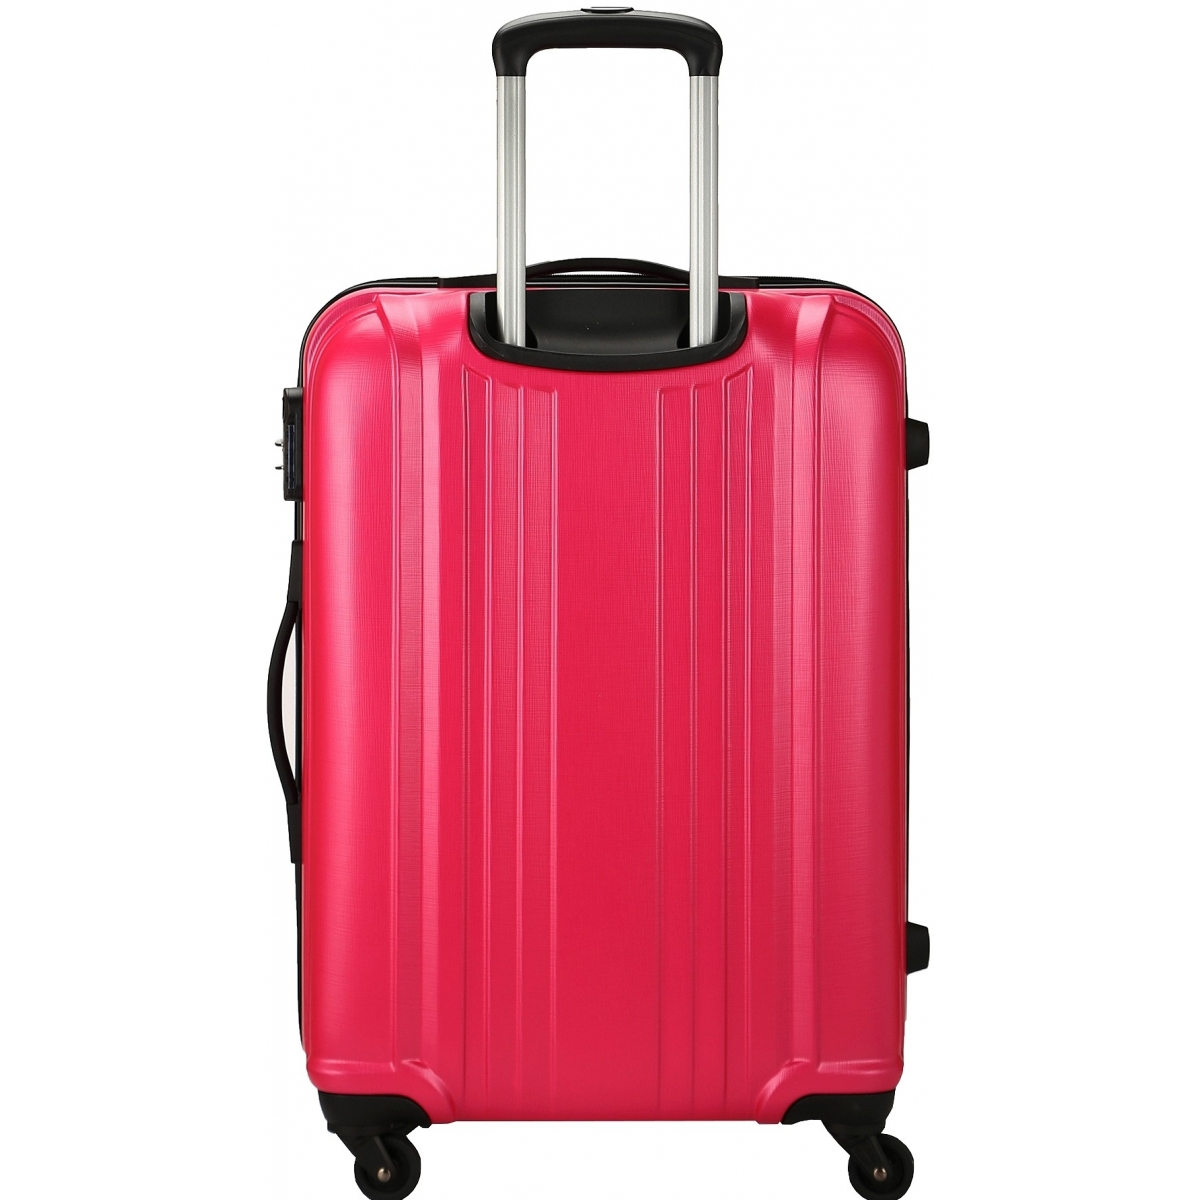 valise rigide david jones taille g 76cm ba10171g couleur principale fushia valise pas. Black Bedroom Furniture Sets. Home Design Ideas